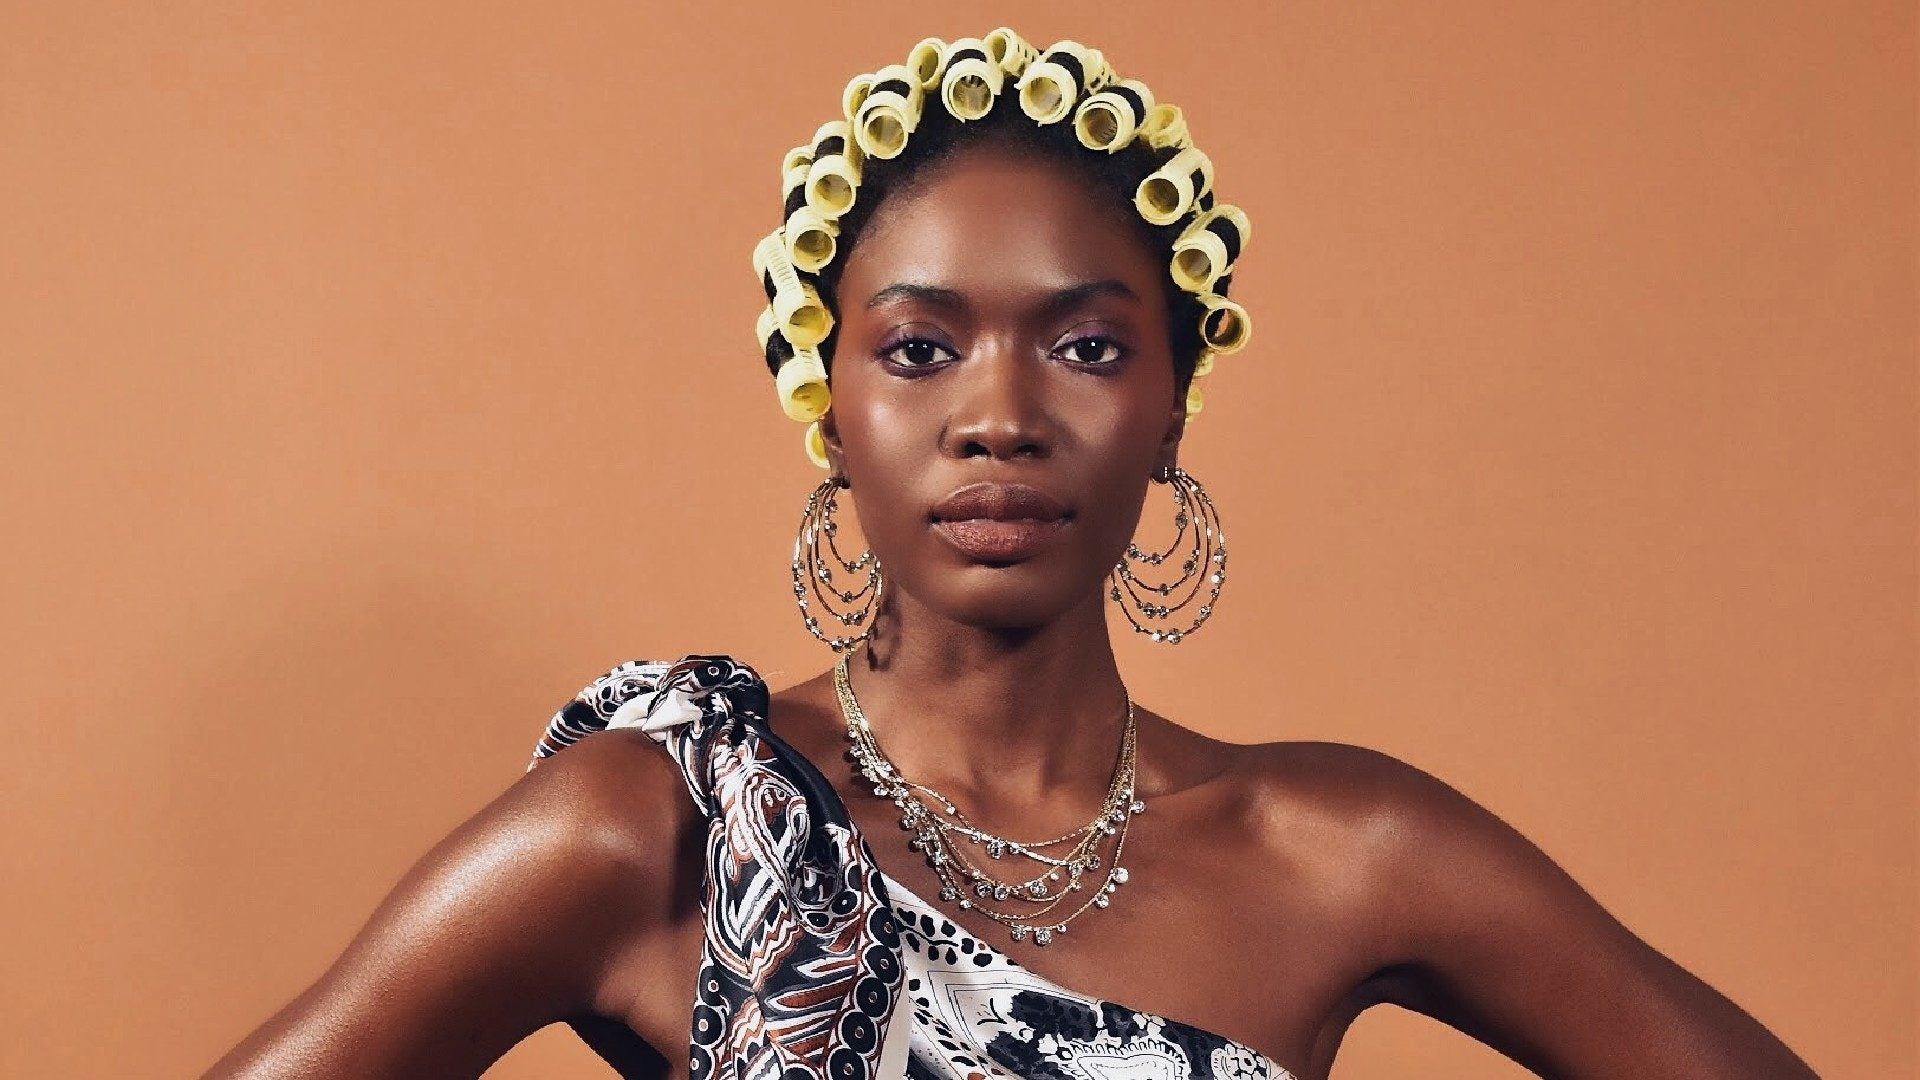 Hairstylist Anike Rabiu Pays Homage To This Timeless Hair Accessory